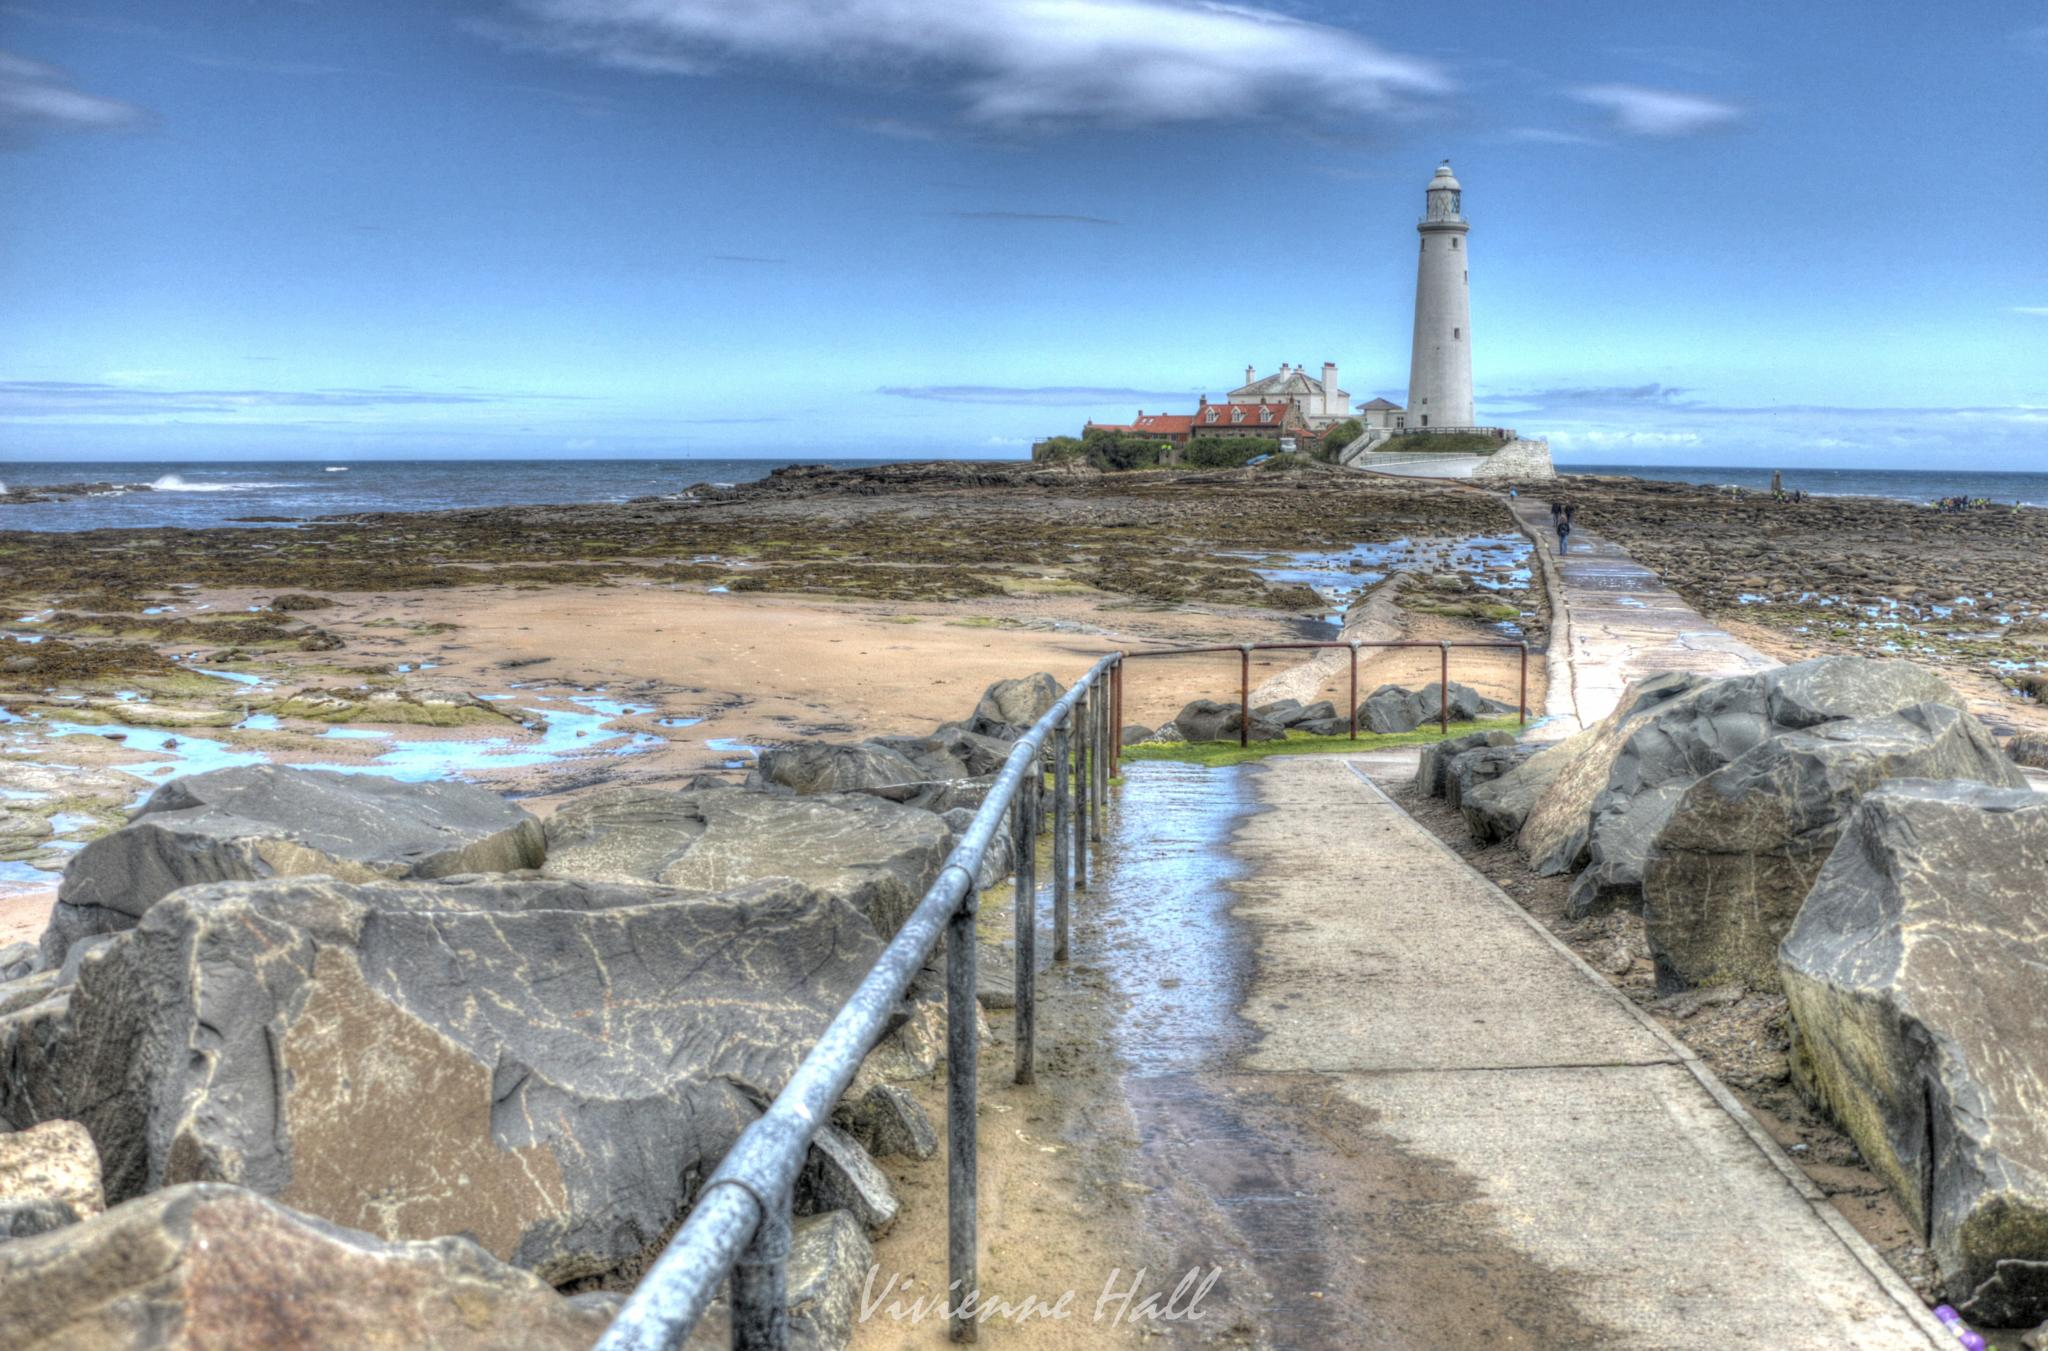 Lighthouse Path by vivienne.hall.16